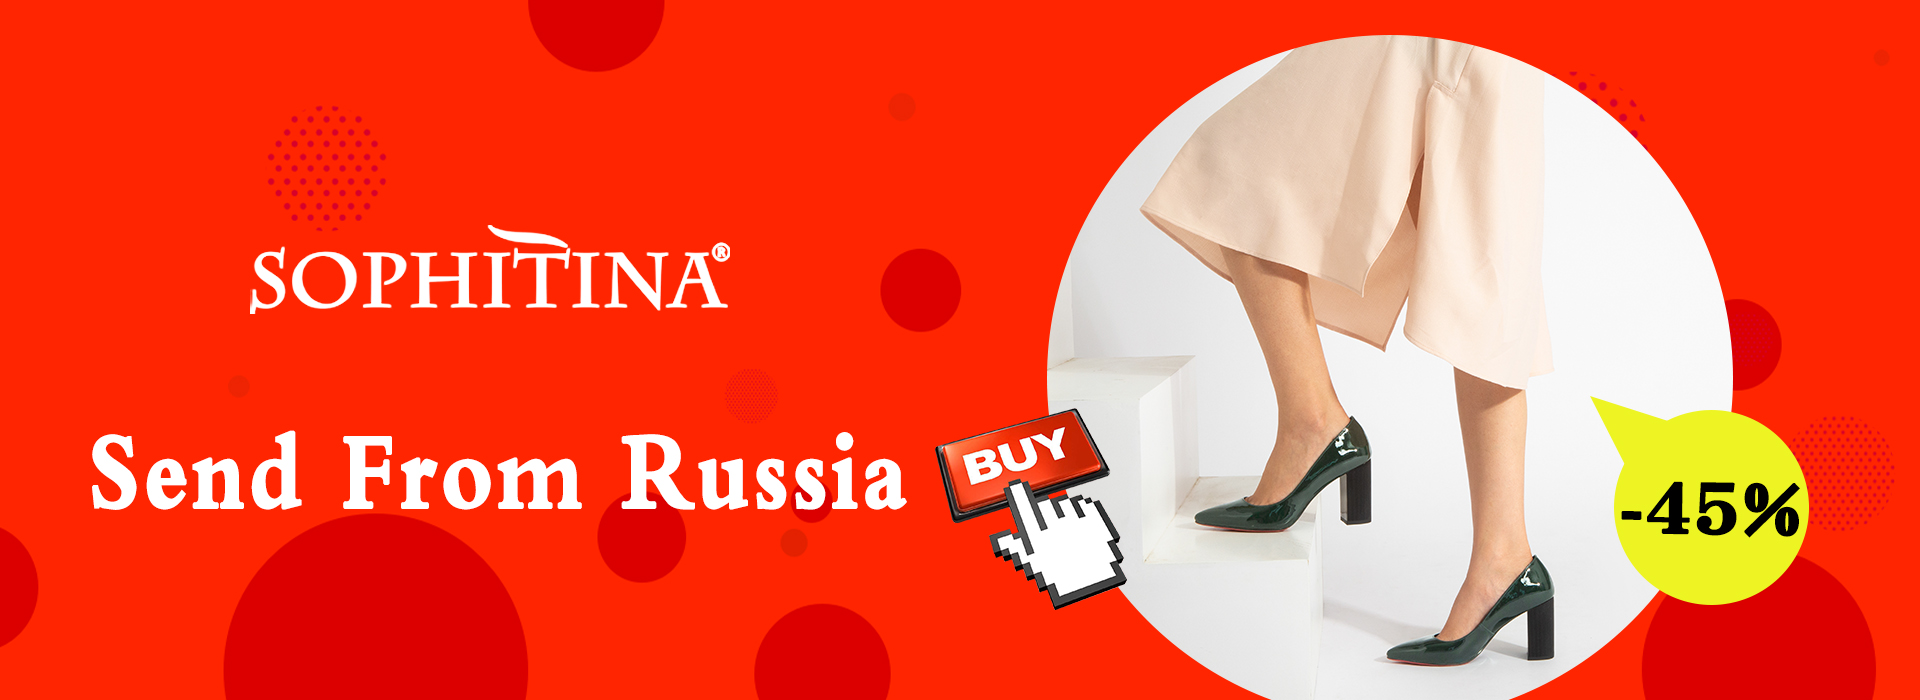 H86031a286fc34dd988c8077f82097aebQ SOPHITINA Sandals Handmade Genuine Leather 2019 New Sexy Lady Peep Toe Sandals Square Heel Buckle Strap Classics Shoes Woman S22